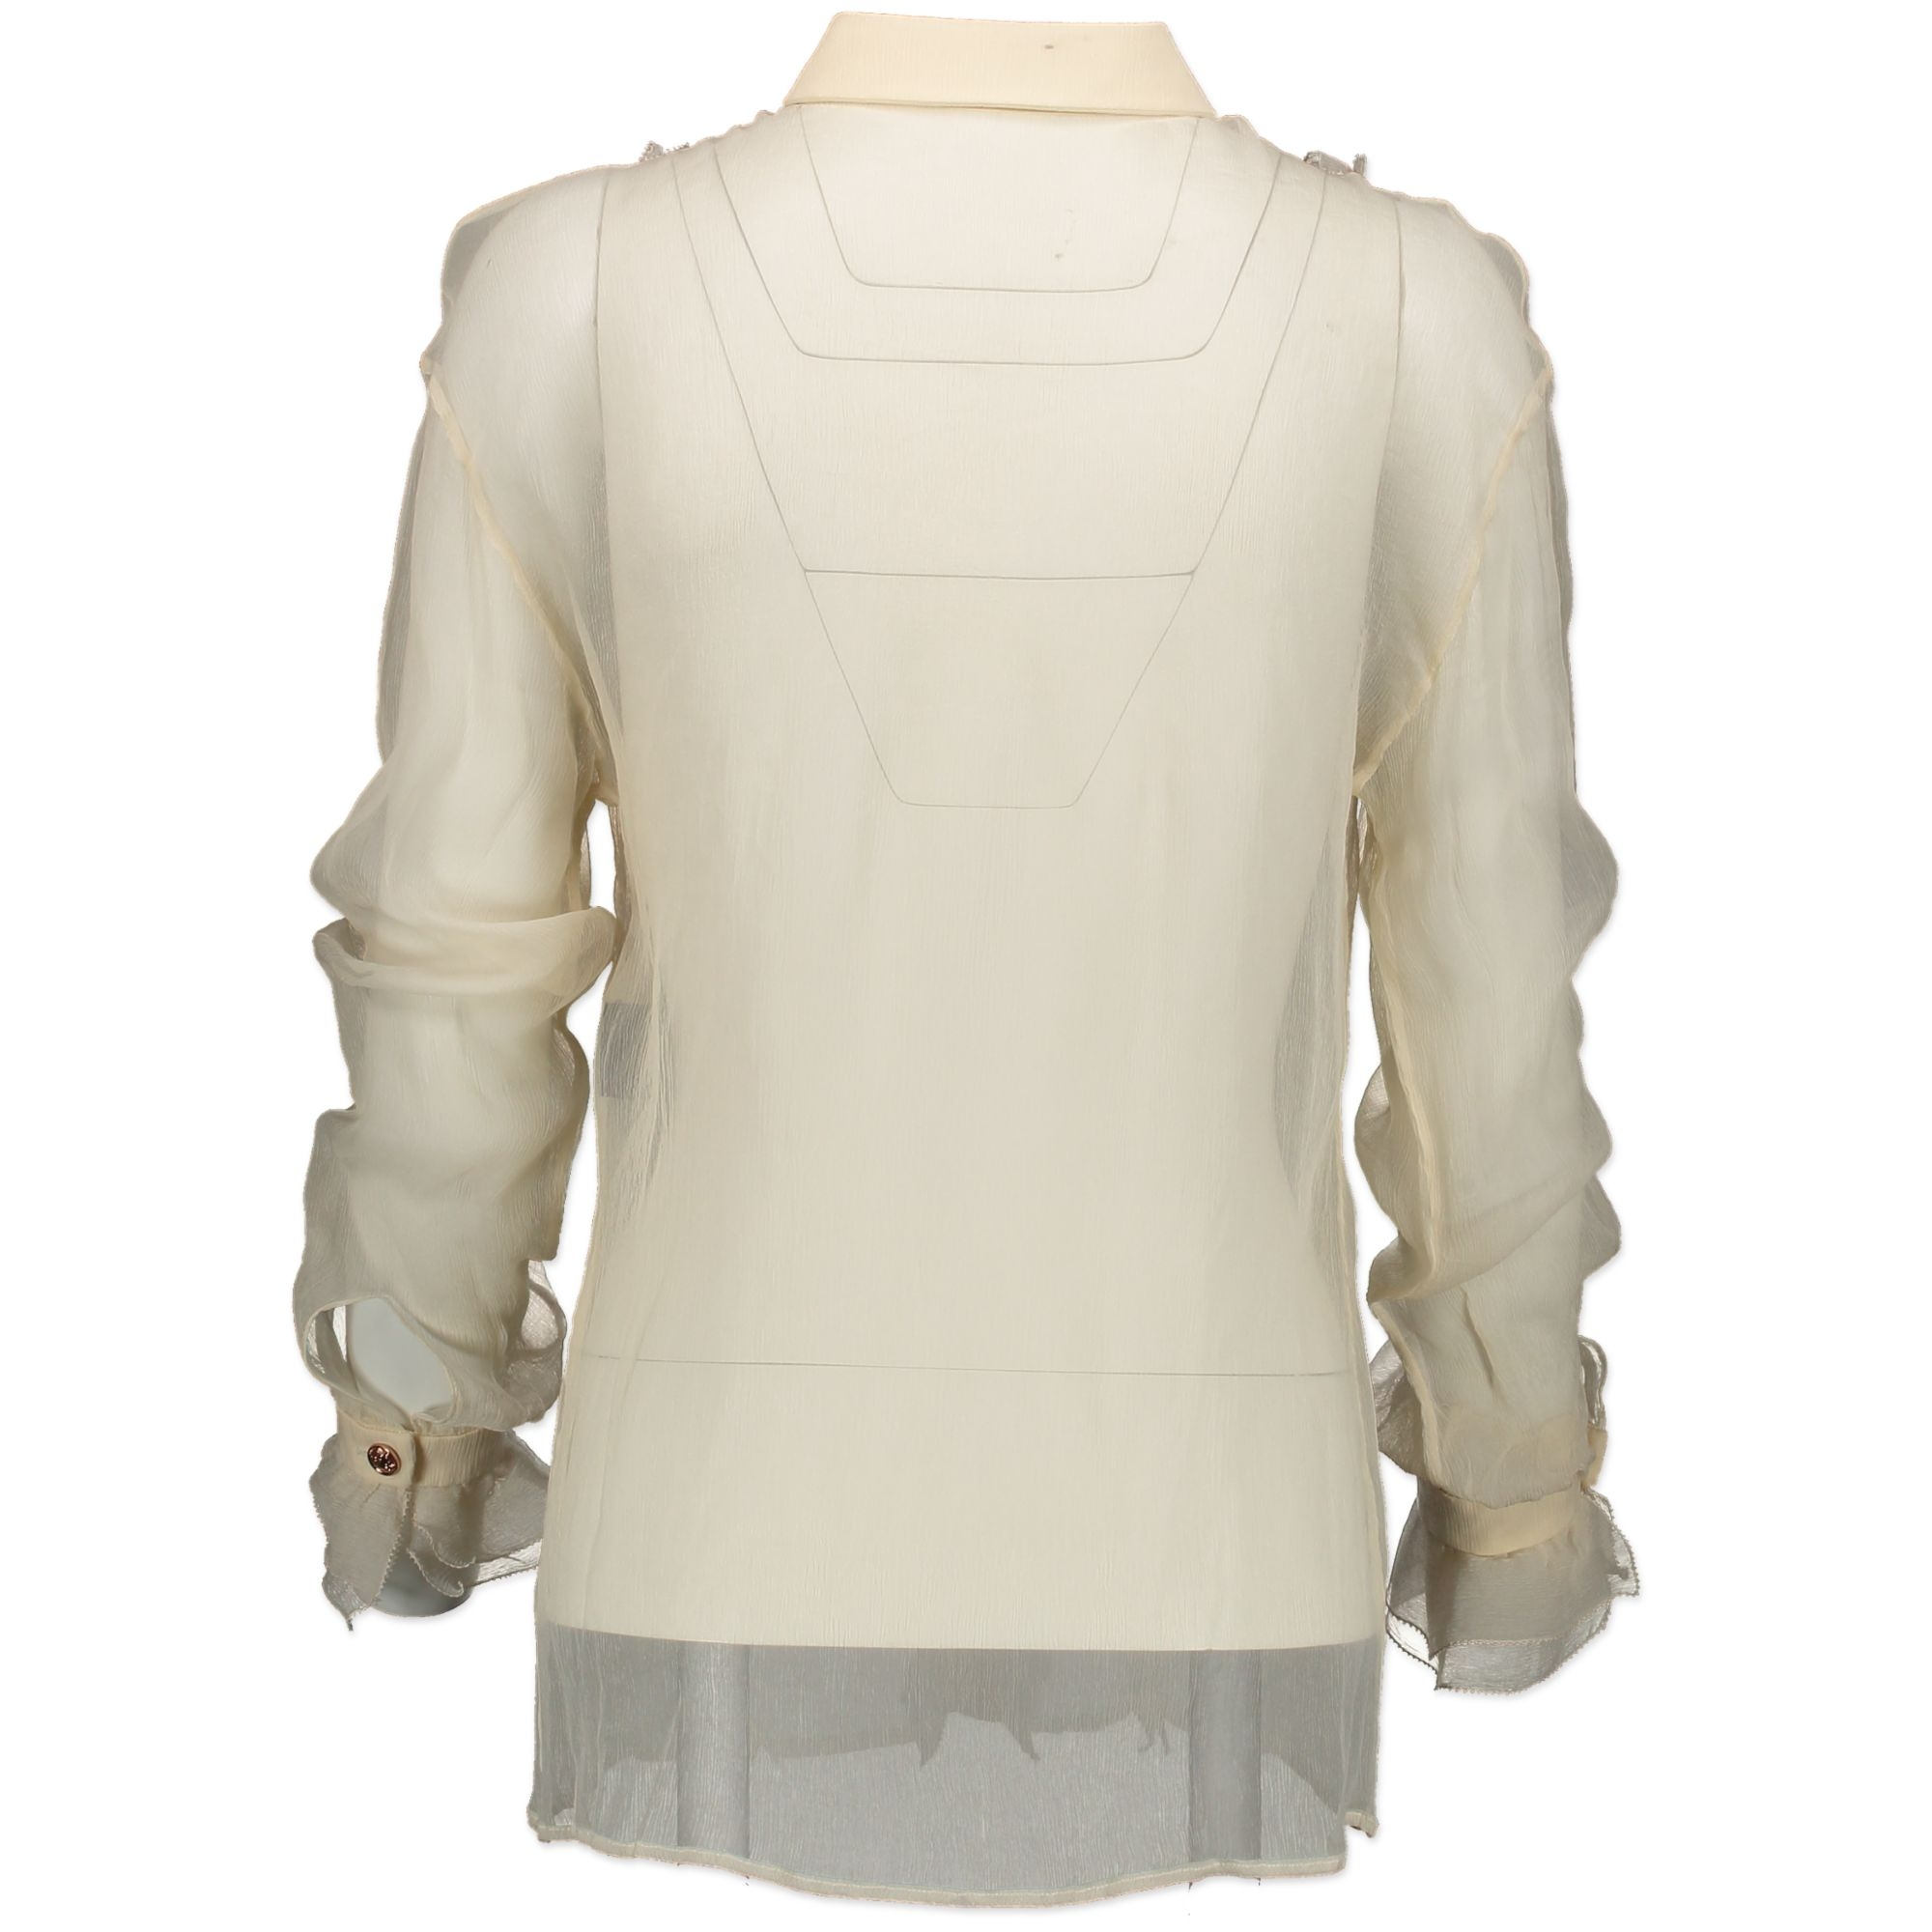 Versace White See Through Blouse